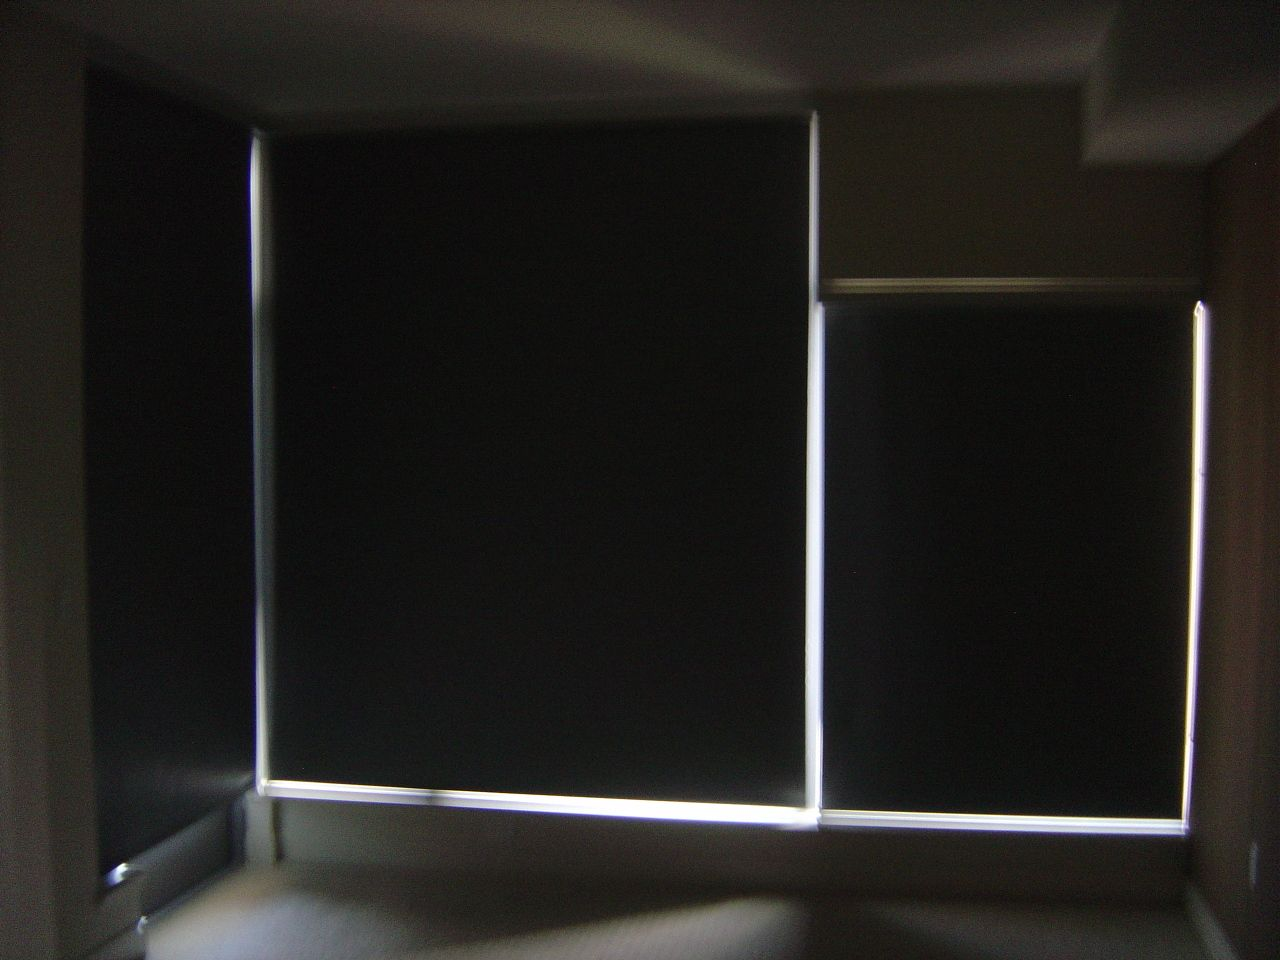 Light blocking window treatments - Blackout Window Shades Blackout Window Shades Find More About Blackout Shades At Http